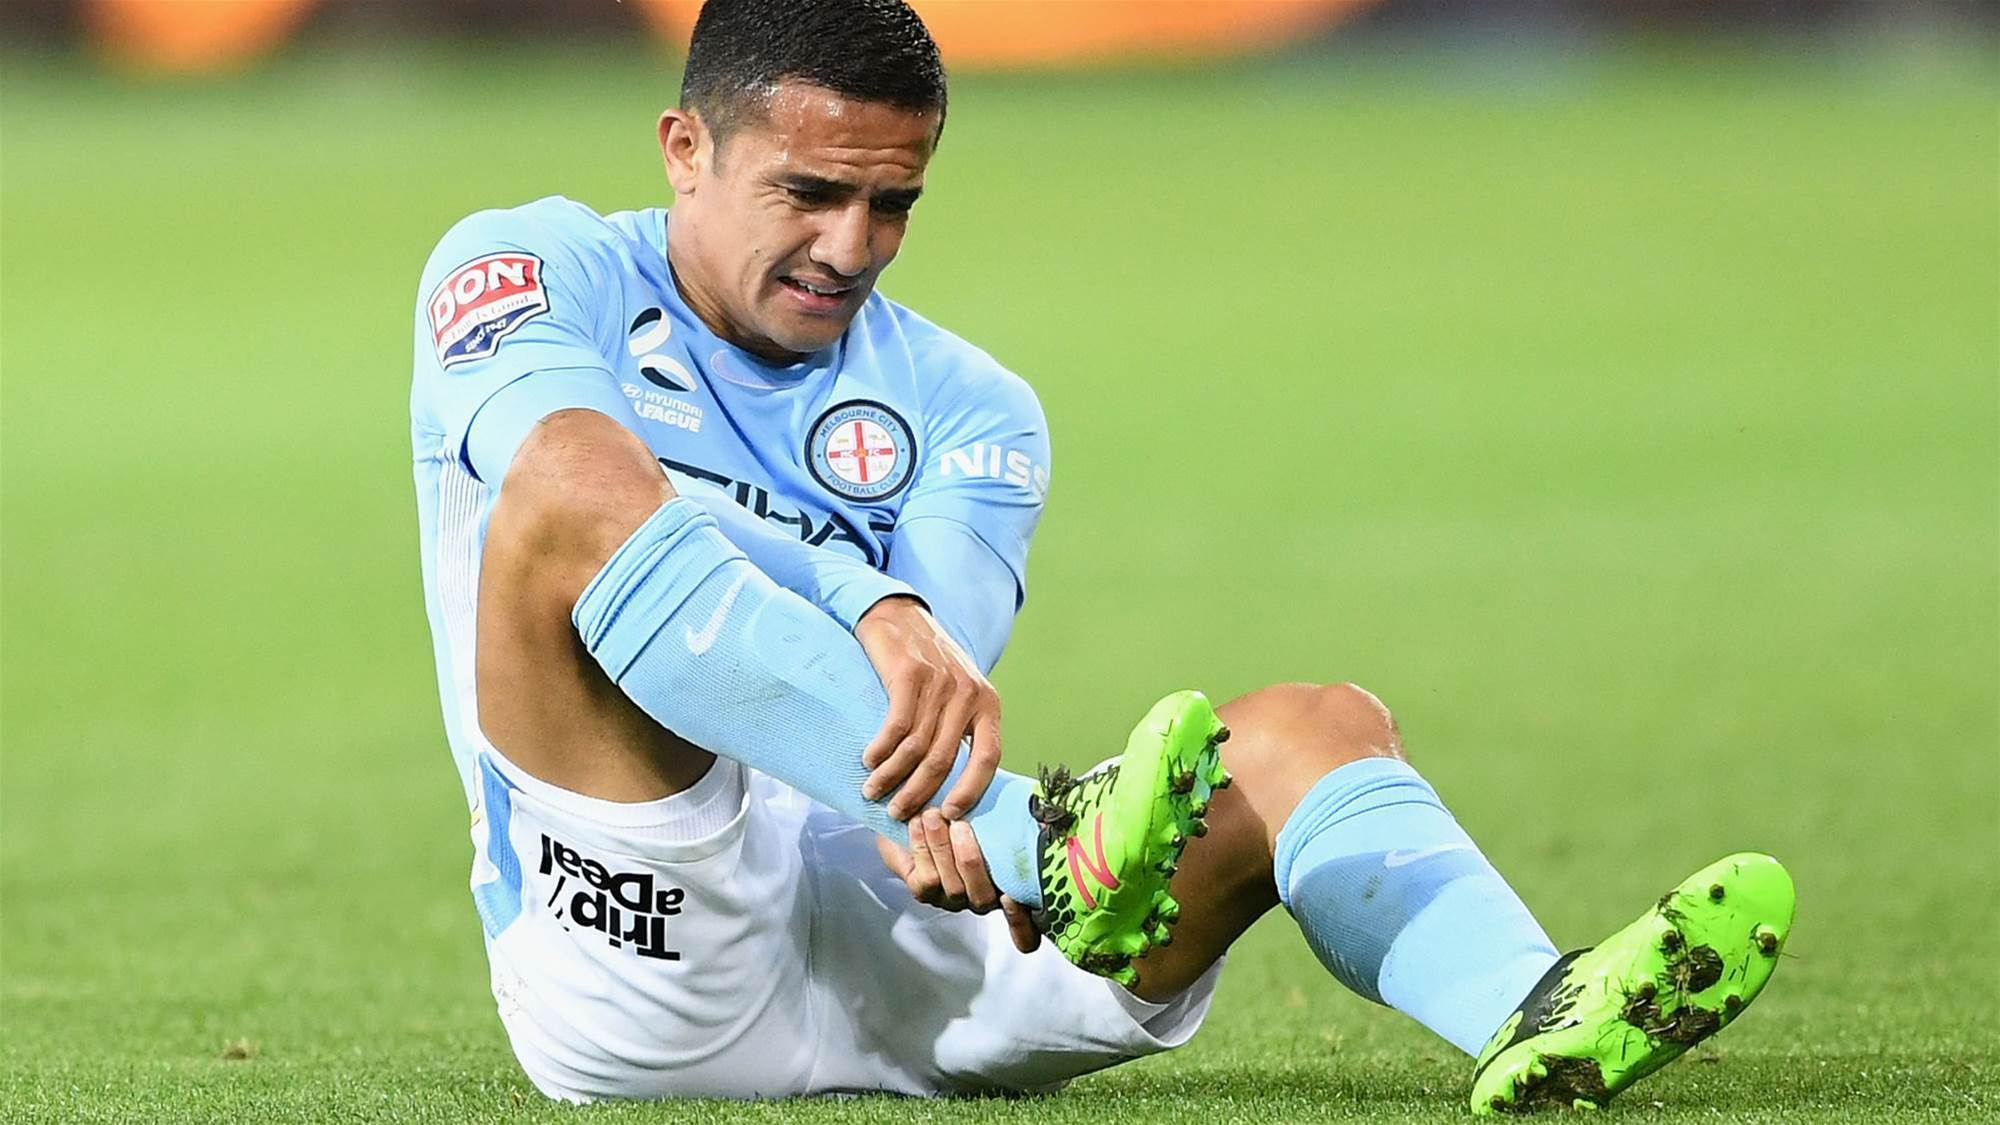 Breaking: Cahill injury scare